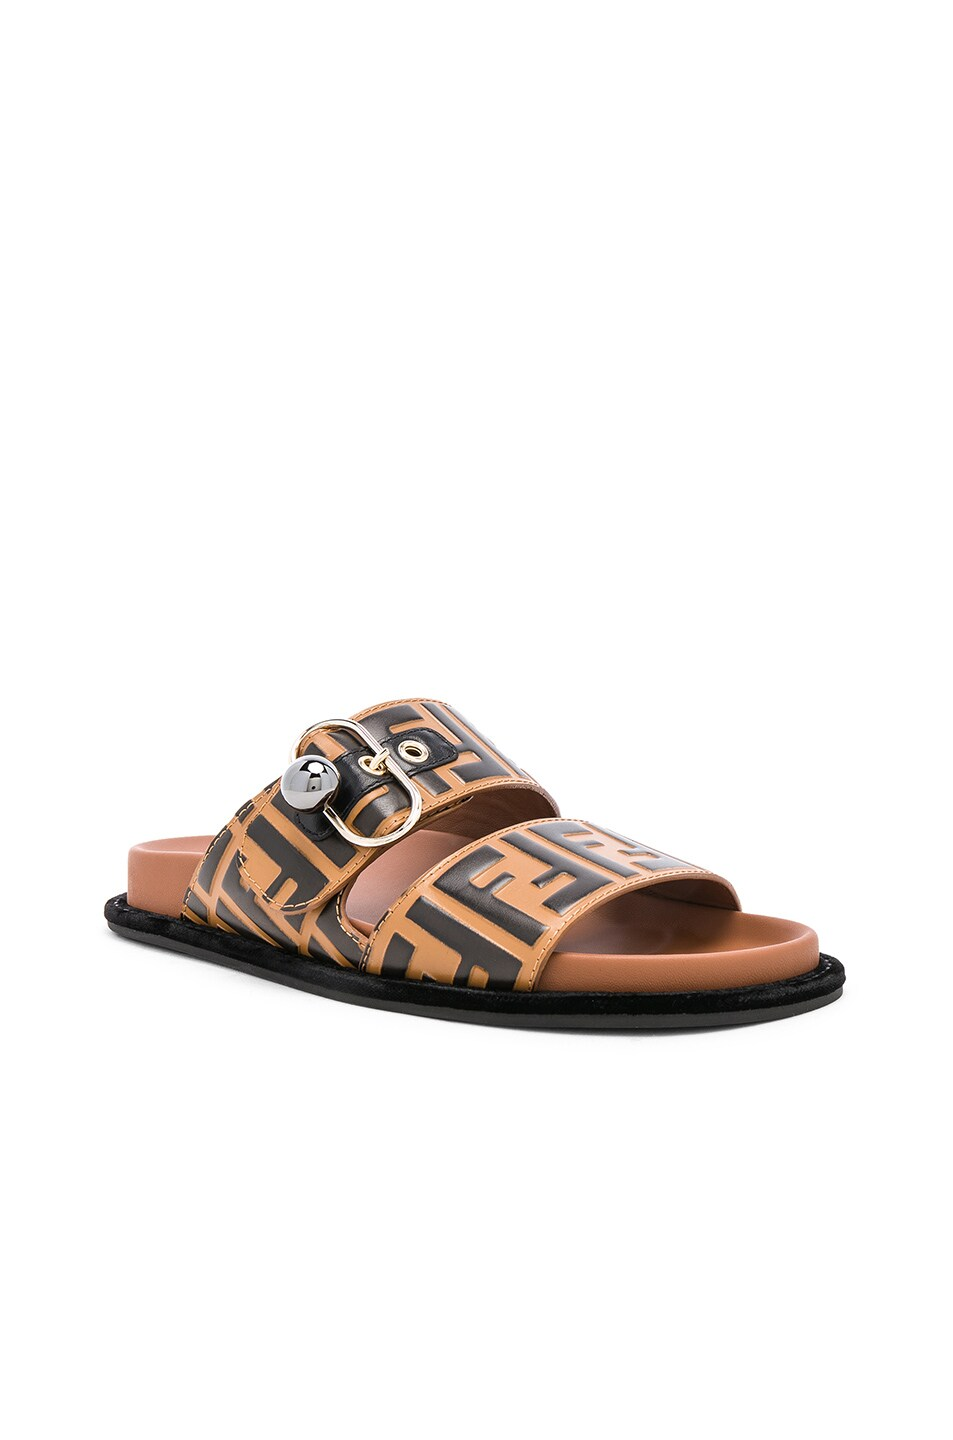 Image 2 of Fendi Pearland Logo Slides in Brown & Black